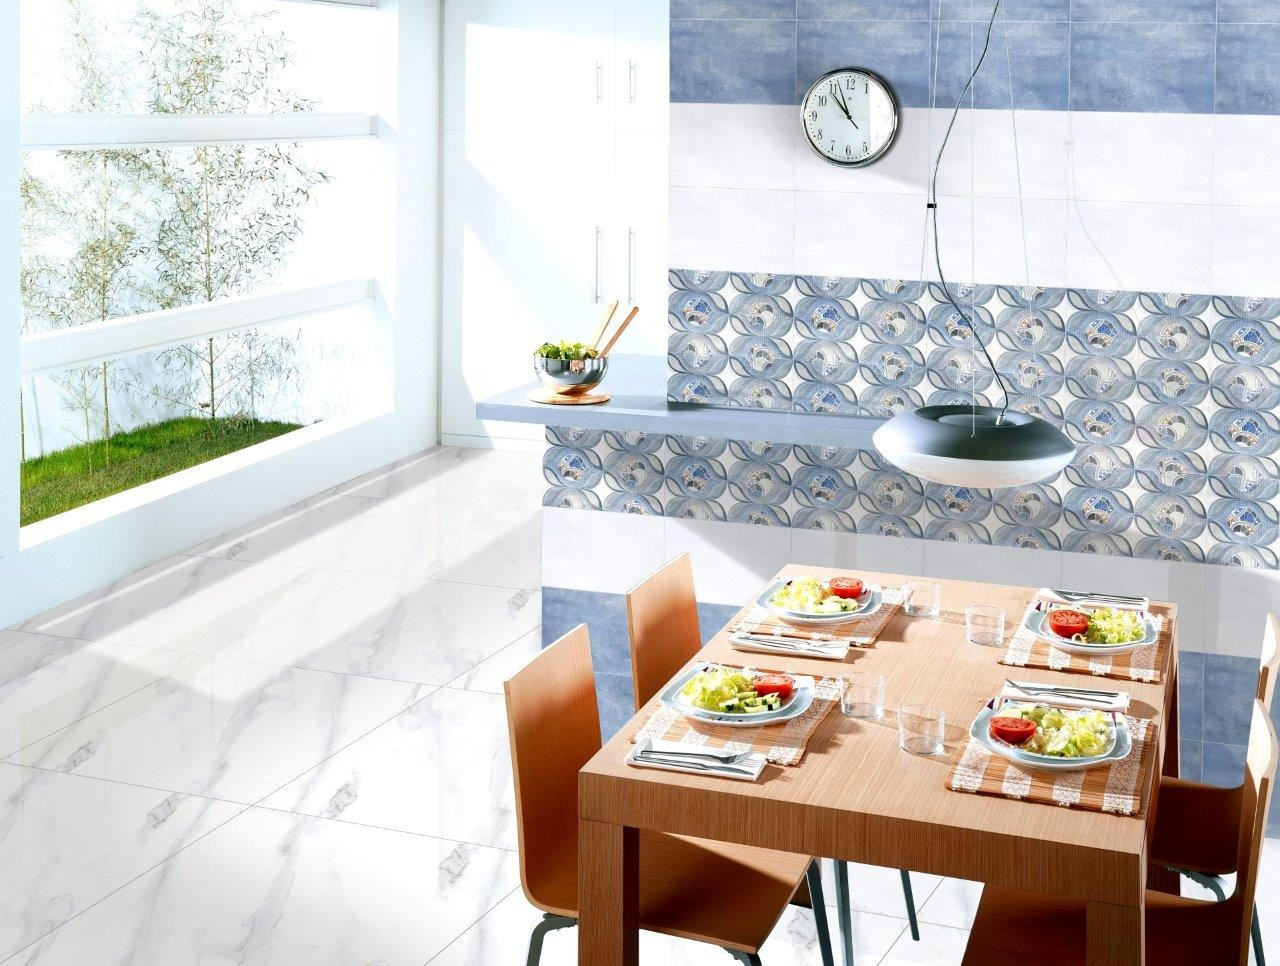 Kitchen Tiles Design Photos In India Which Is The Best Kitchen Tiles Manufacturer In India Quora